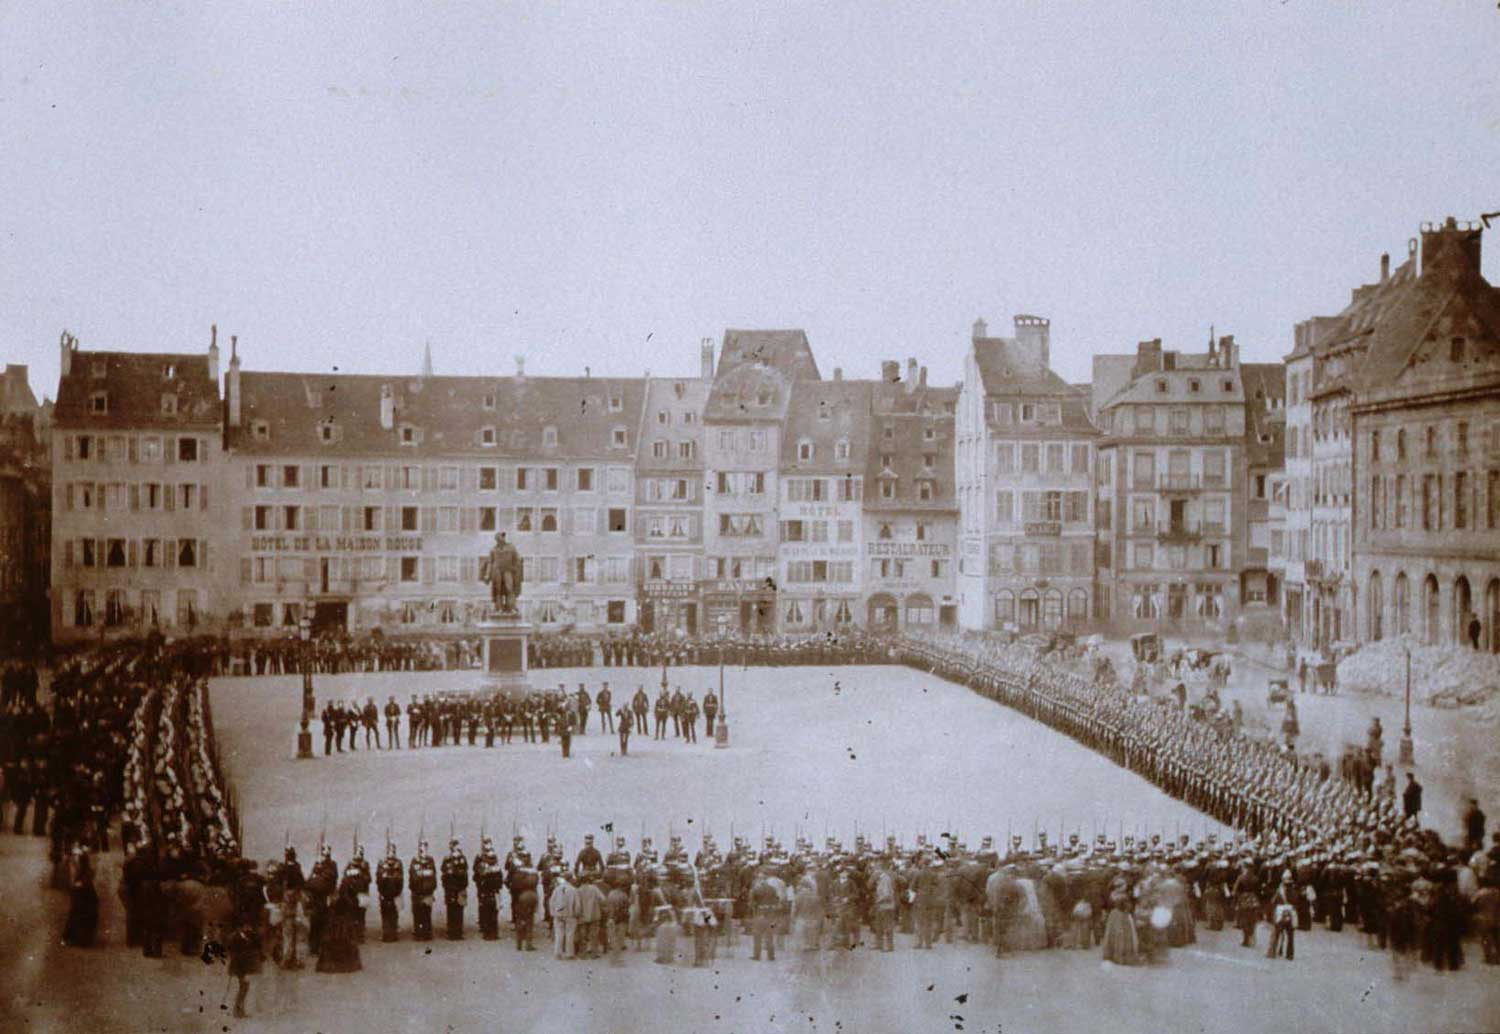 A military parade when Strasbourg is no longer French in 1871